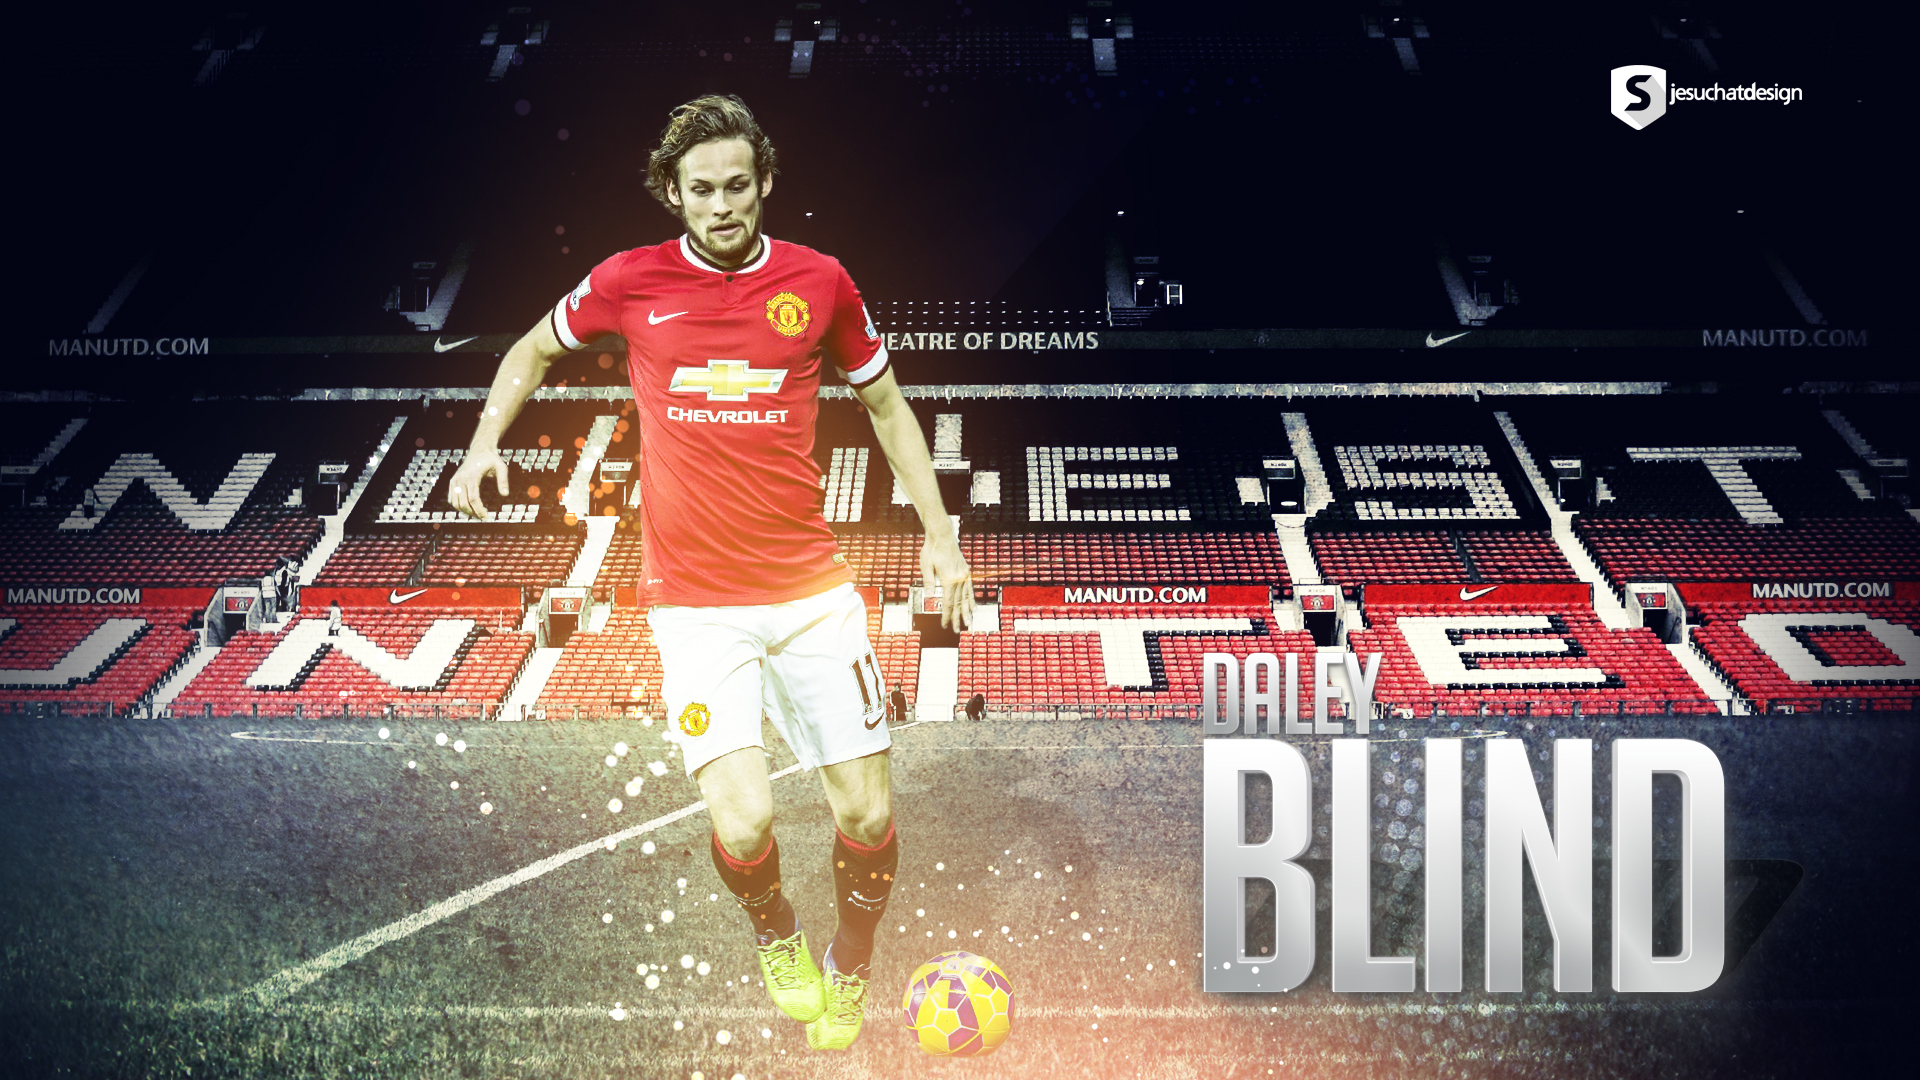 Daley Blind Wallpaper: Daley Blind Wallpaper By Jesuchat On DeviantArt